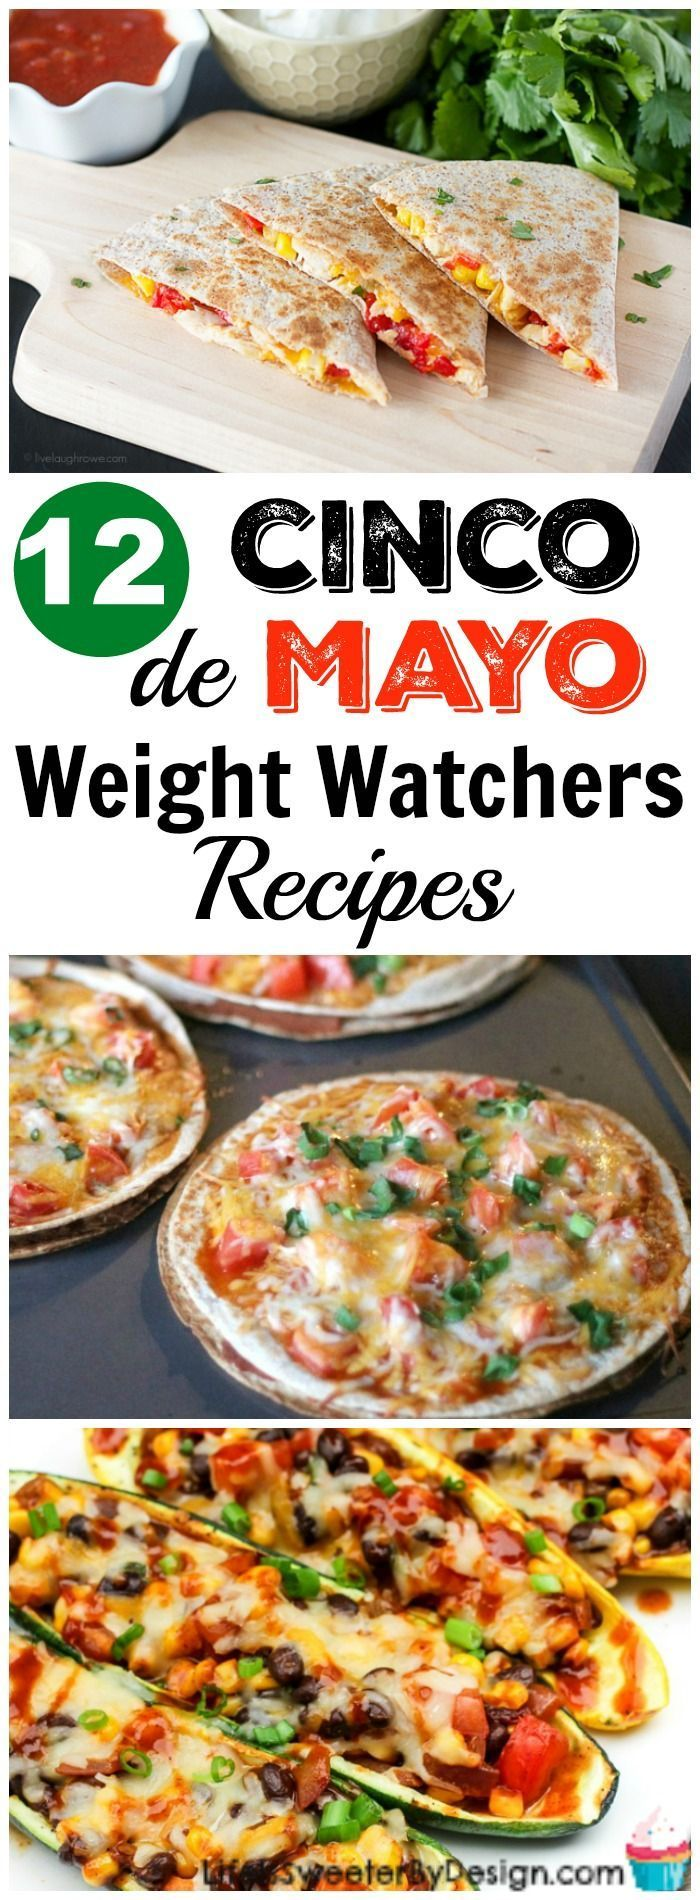 Weight Watchers Cinco de Mayo recipes will make your party amazing! These Cinco de Mayo recipes are delicious and have low SmartPoints too. Stay on plan and don't feel deprived!  #weightwatchers #weightwatchersrecipes #freestyle